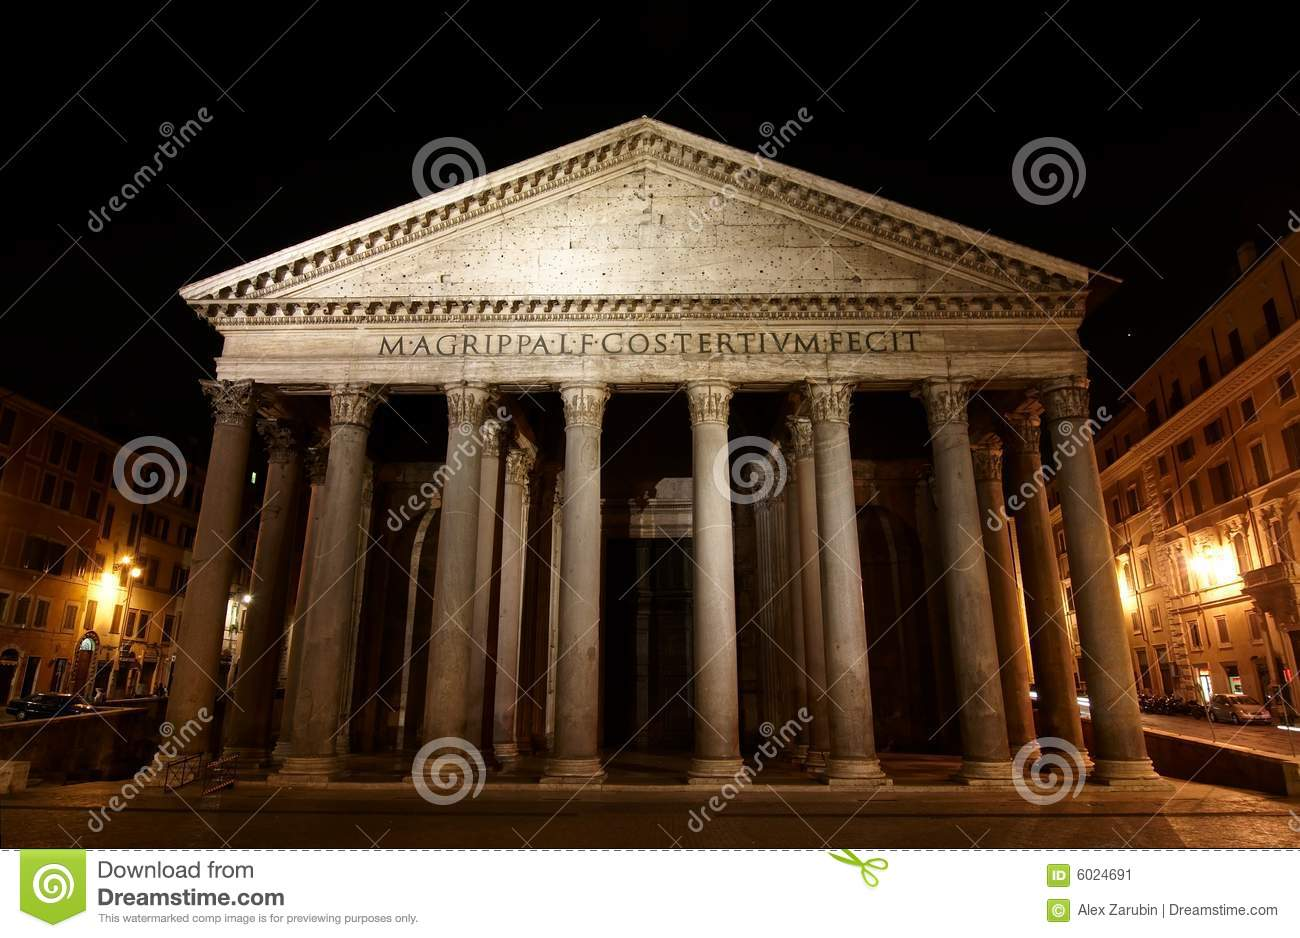 Pantheon - one of the most famous building in Rome